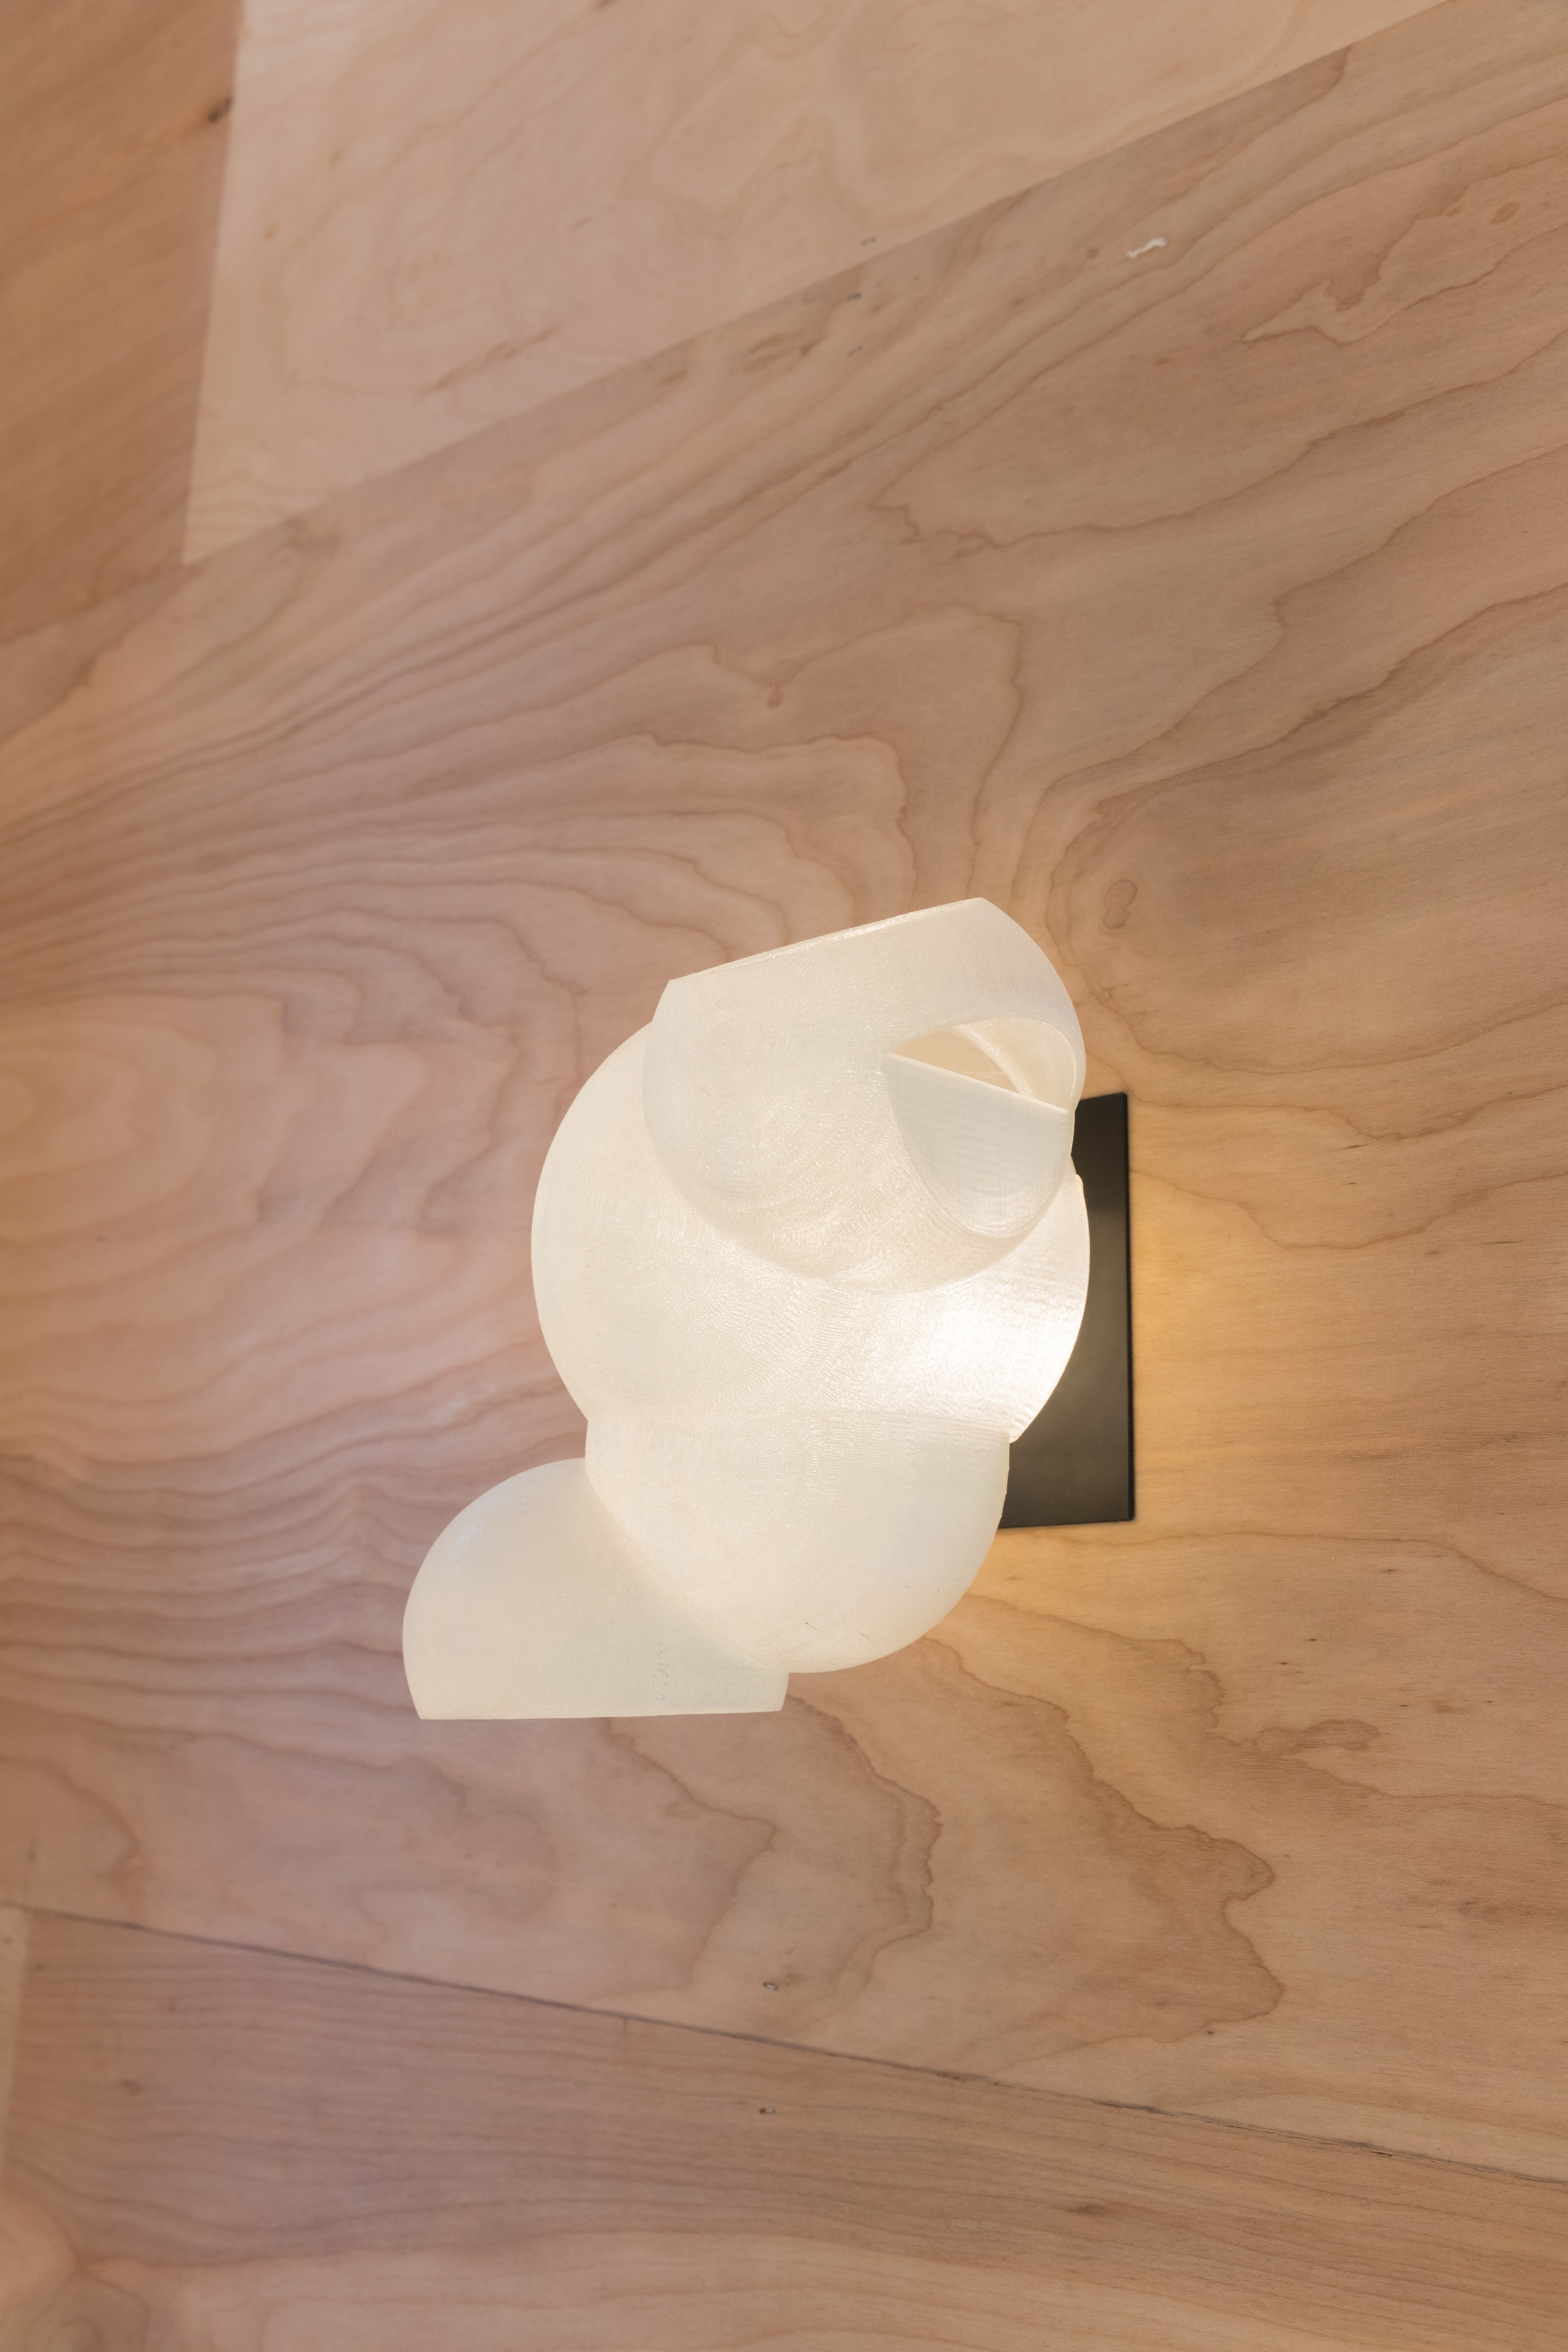 https://stevenholl.sfo2.digitaloceanspaces.com/uploads/projects/project-images/Ex of In House SHA 1364.jpg